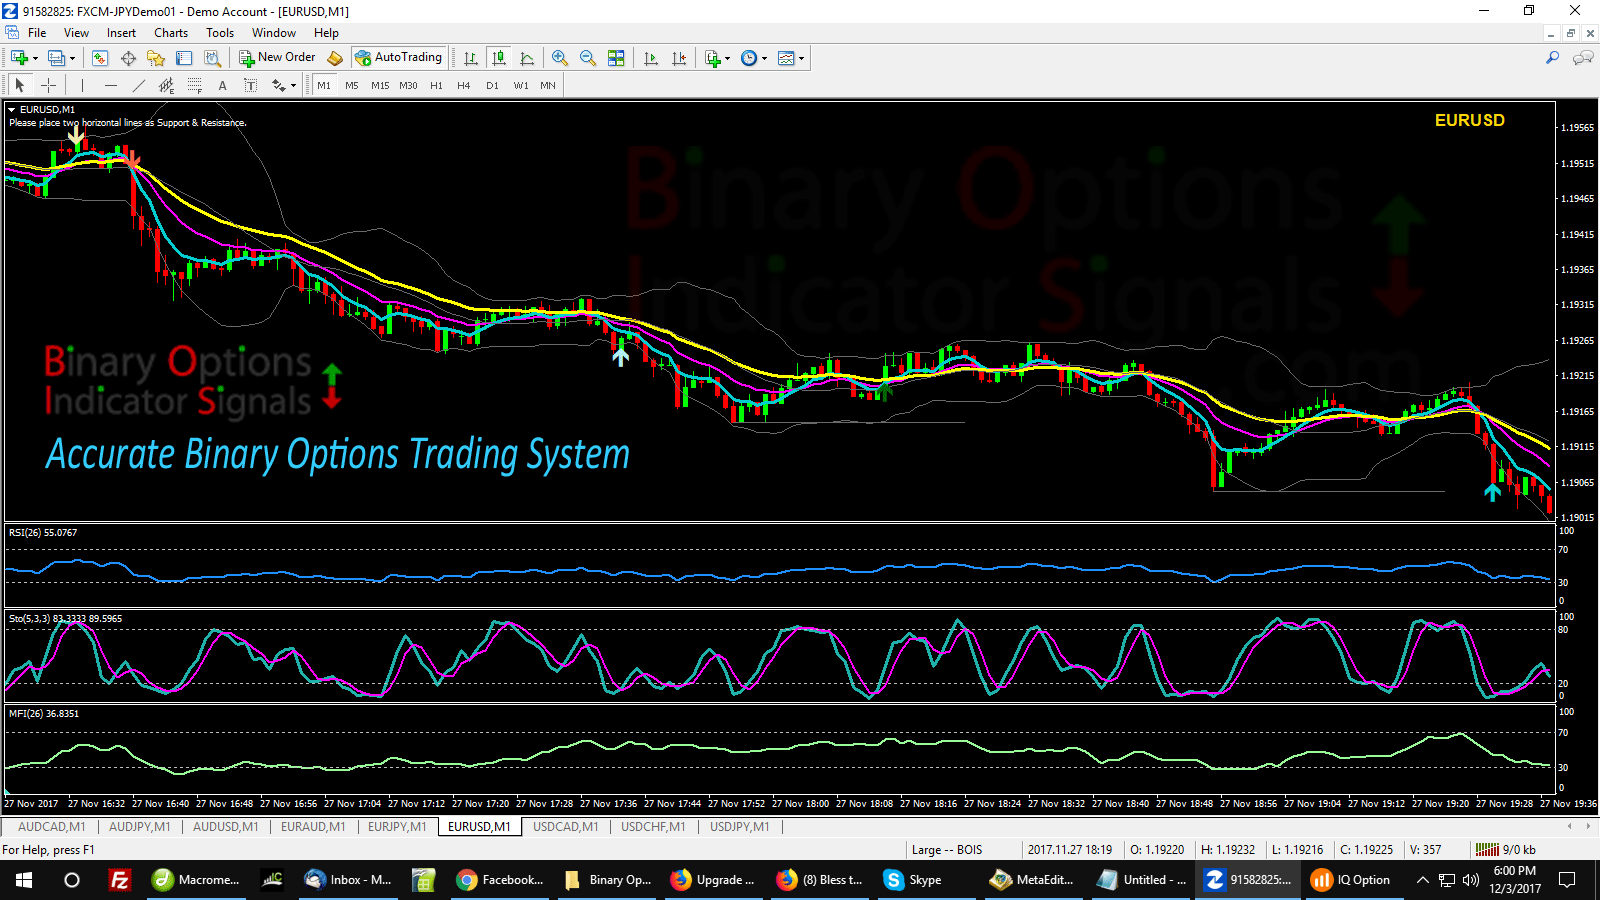 Trading signals for binary options